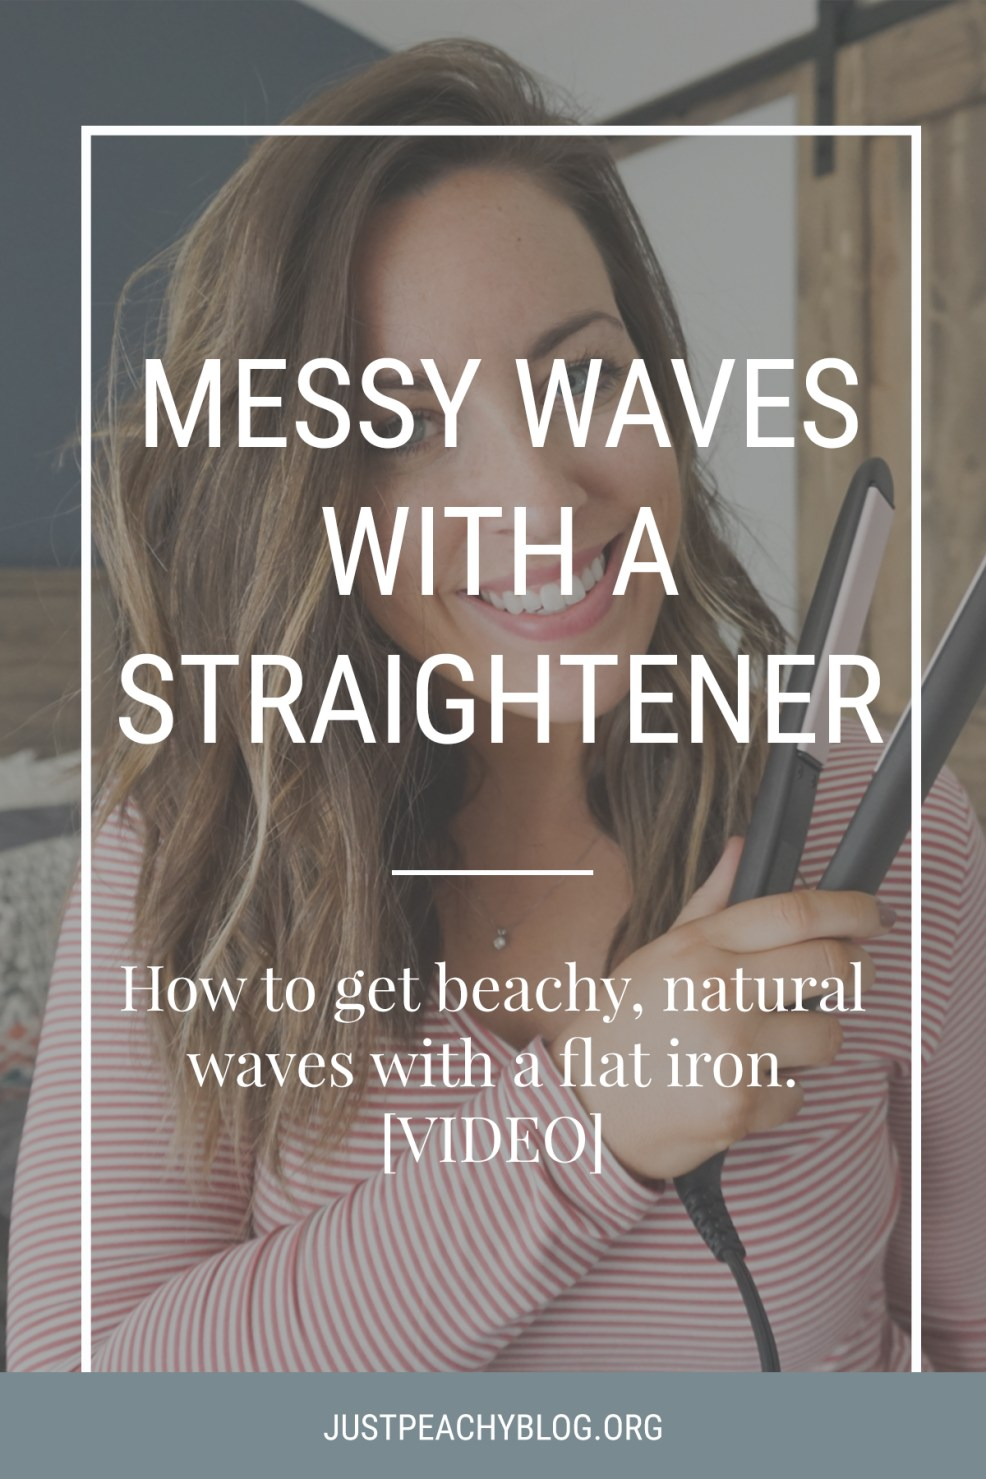 Messy Beach Waves with a Straightener | Just Peachy Blog